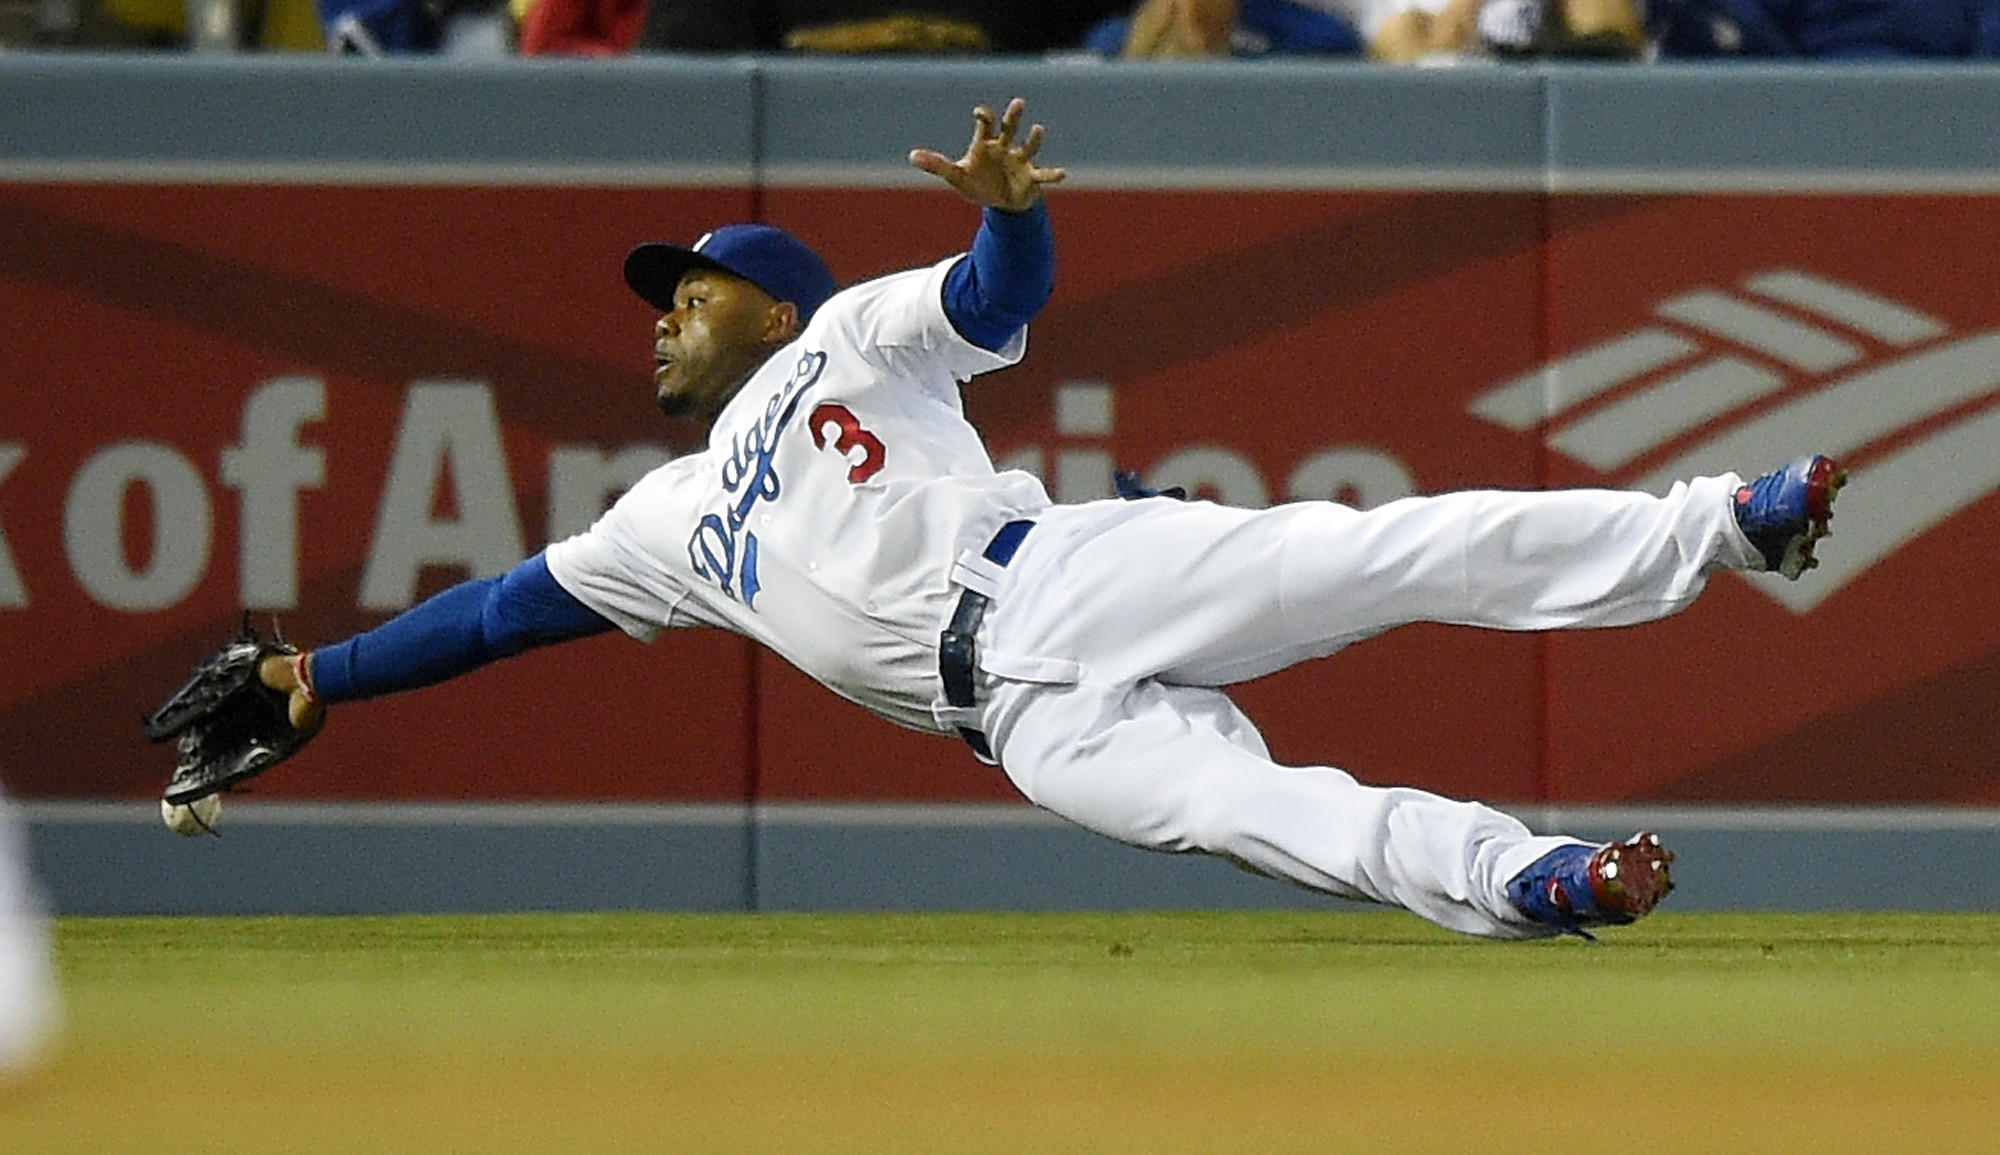 Dodgers left fielder Carl Crawford can't make a diving catch on a double hit by Philadelphia's Chase Utley during Monday's loss. Crawford also was involved in a fielding mishap Tuesday that played a big role in another loss to the Phillies.